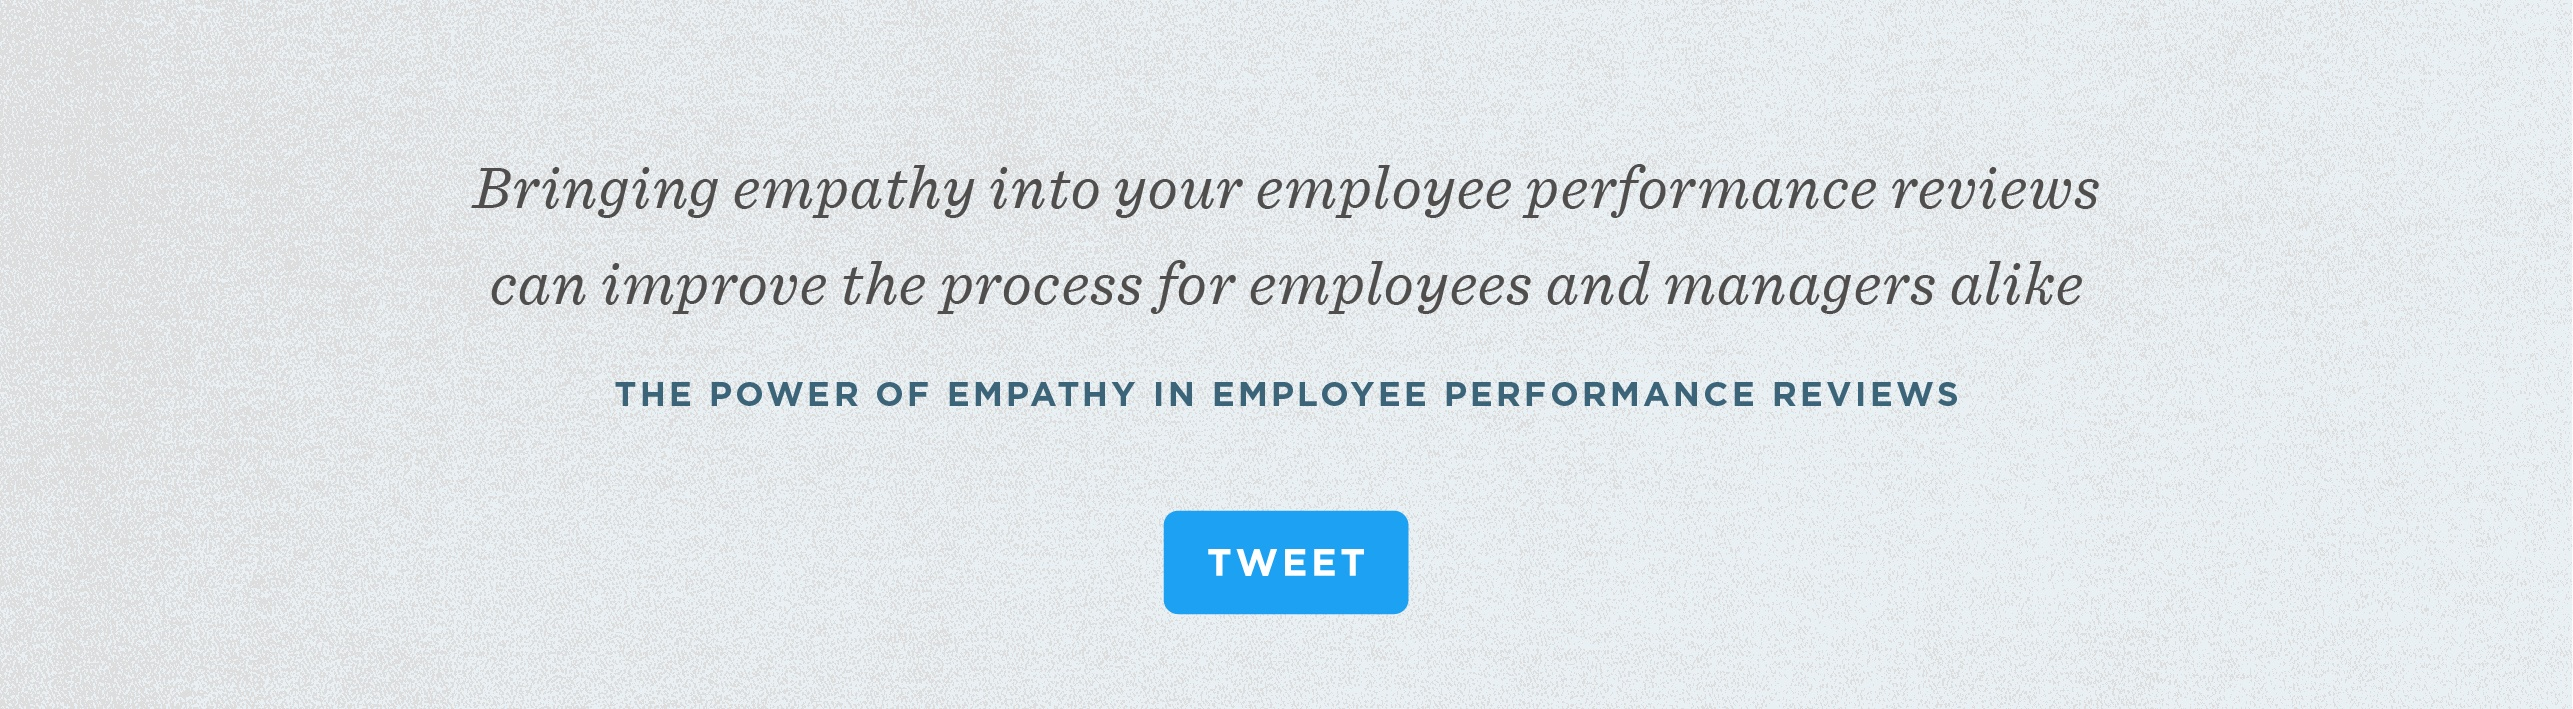 employee performance reviews.jpg